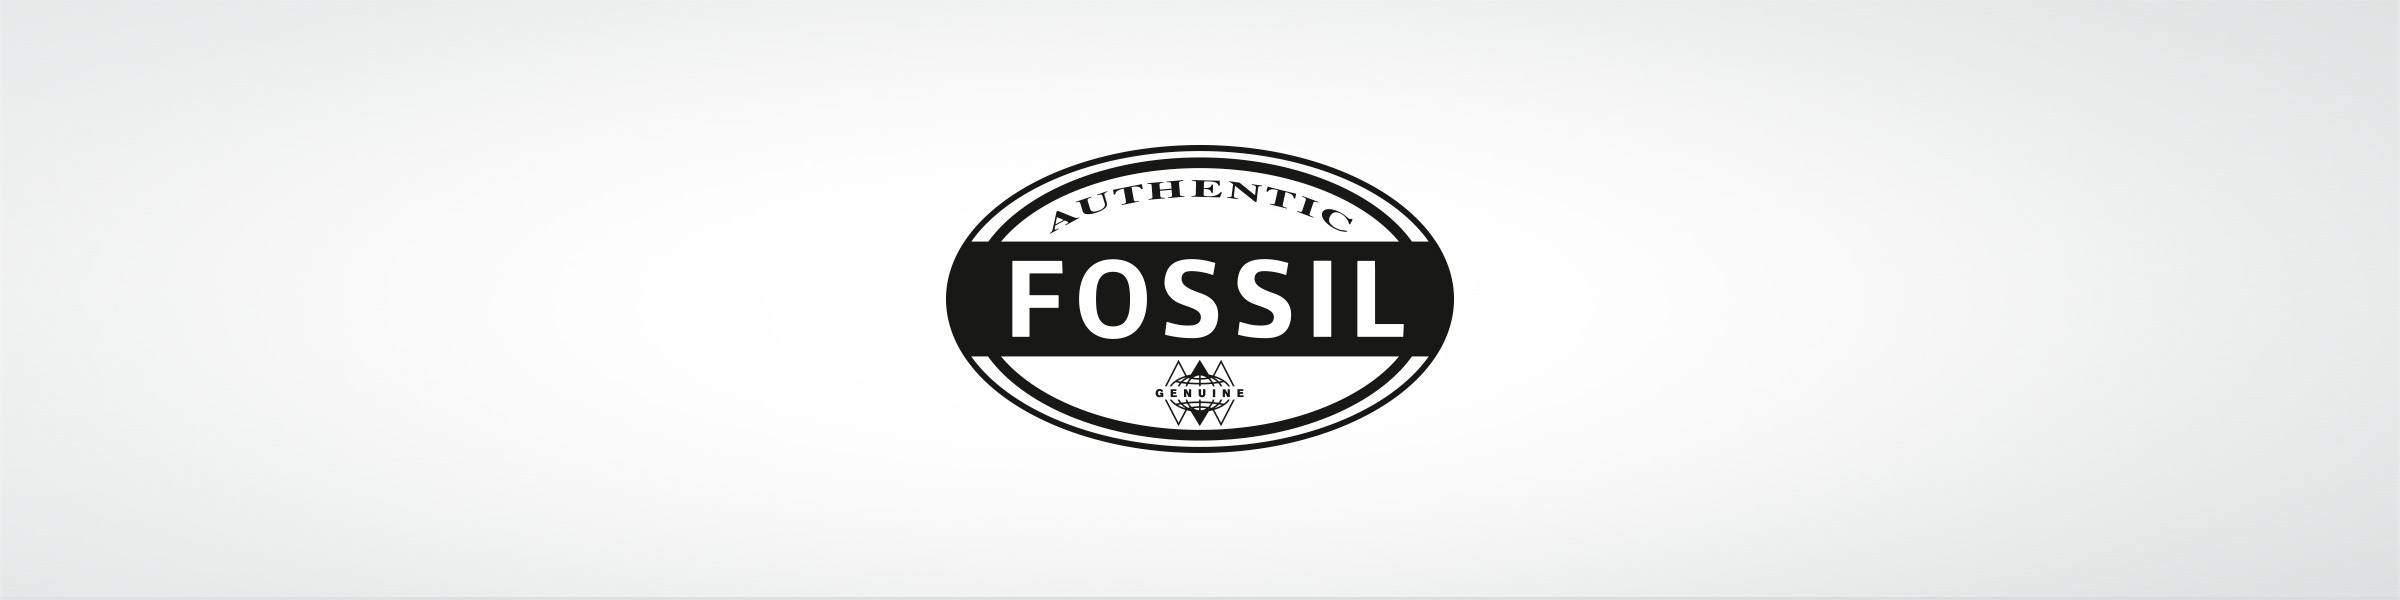 030592 FOSSIL